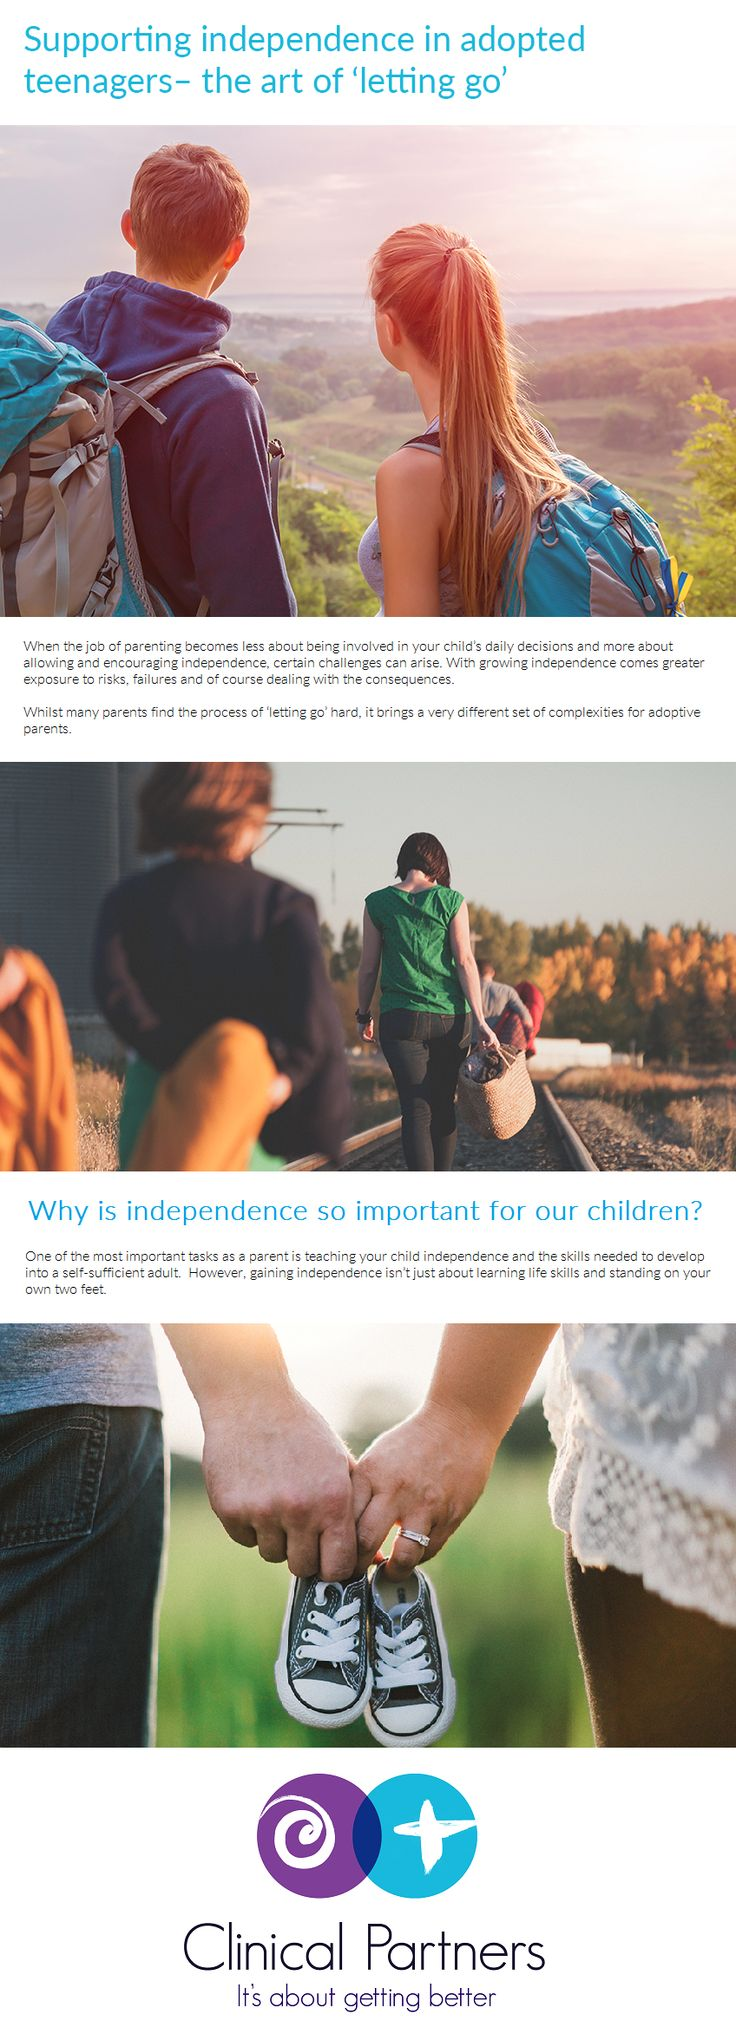 When the job of parenting becomes less about being involved in your child's daily decisions and more about allowing and encouraging independence, certain challenges can arise. With growing independence comes greater exposure to risks, failures and of course dealing with the consequences.   Whilst many parents find the process of 'letting go' hard, it brings a very different set of complexities for adoptive parents. #Parenting #Adoption